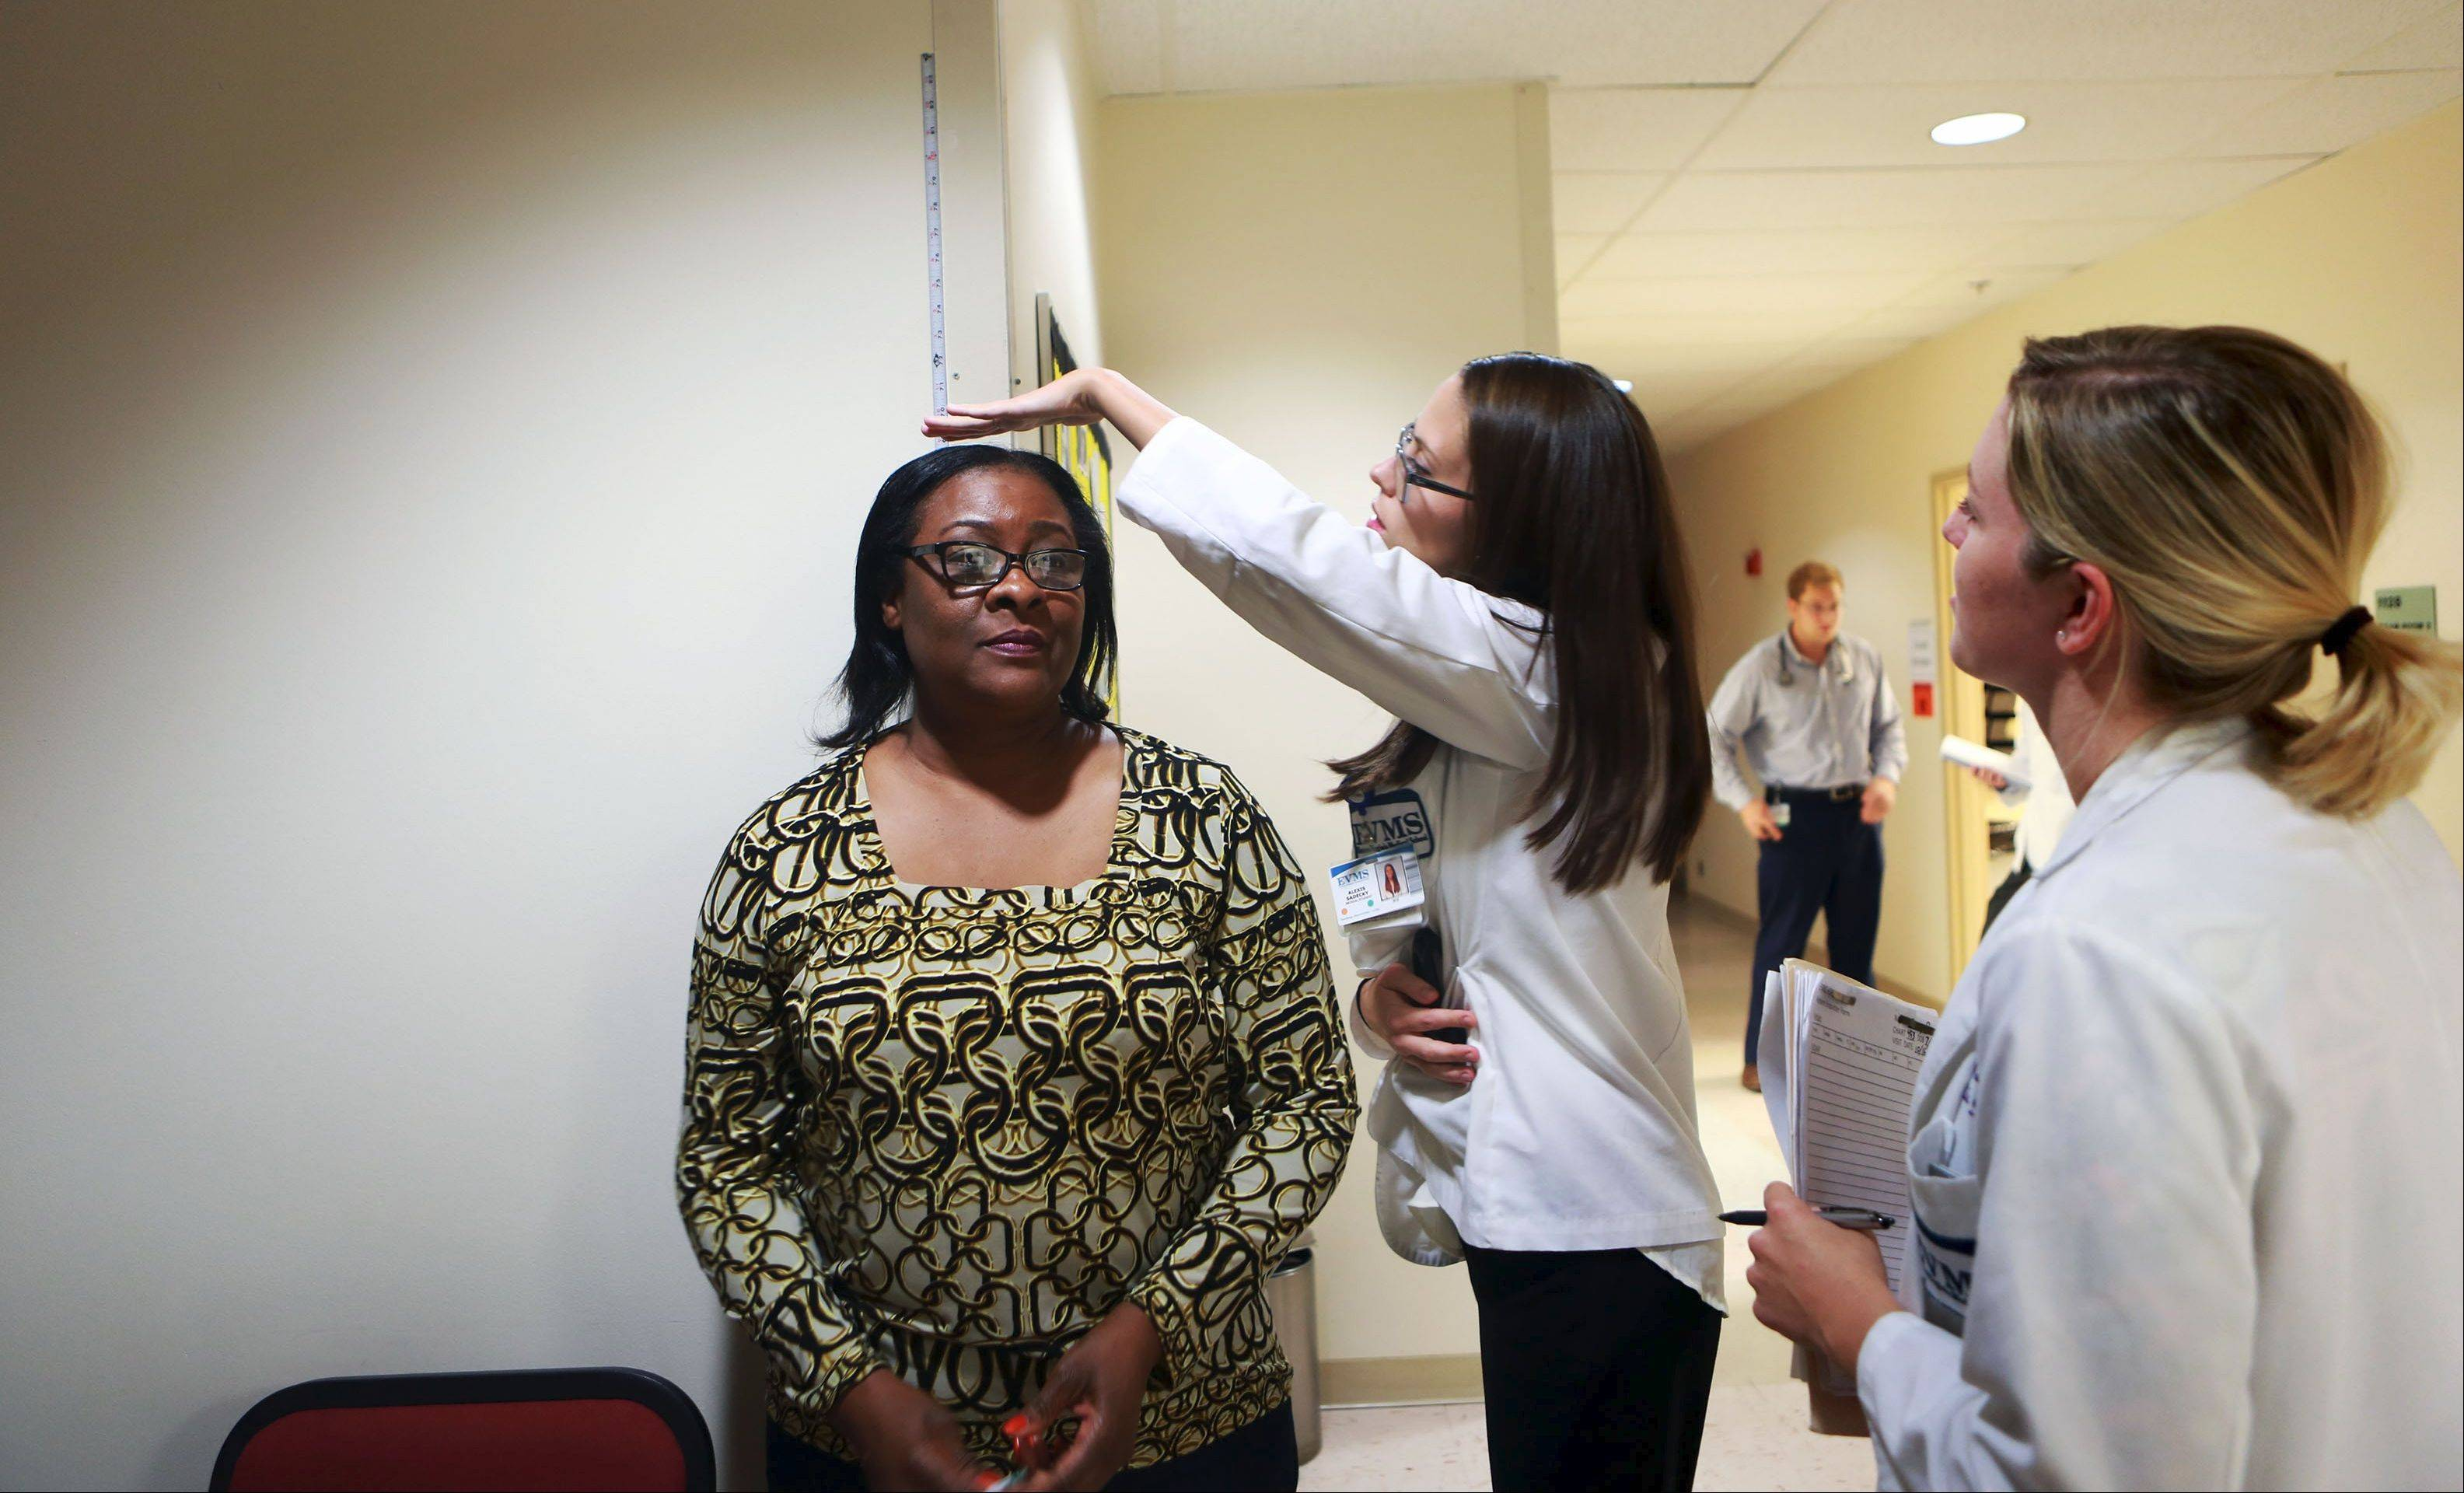 Second-year medical student Alexis Sadecky, center, gathers vitals on patient Donna Eure while Lauren Daugherty looks on at the HOPES women�s clinic in Norfolk, Va., the only student-run clinic in Virginia.